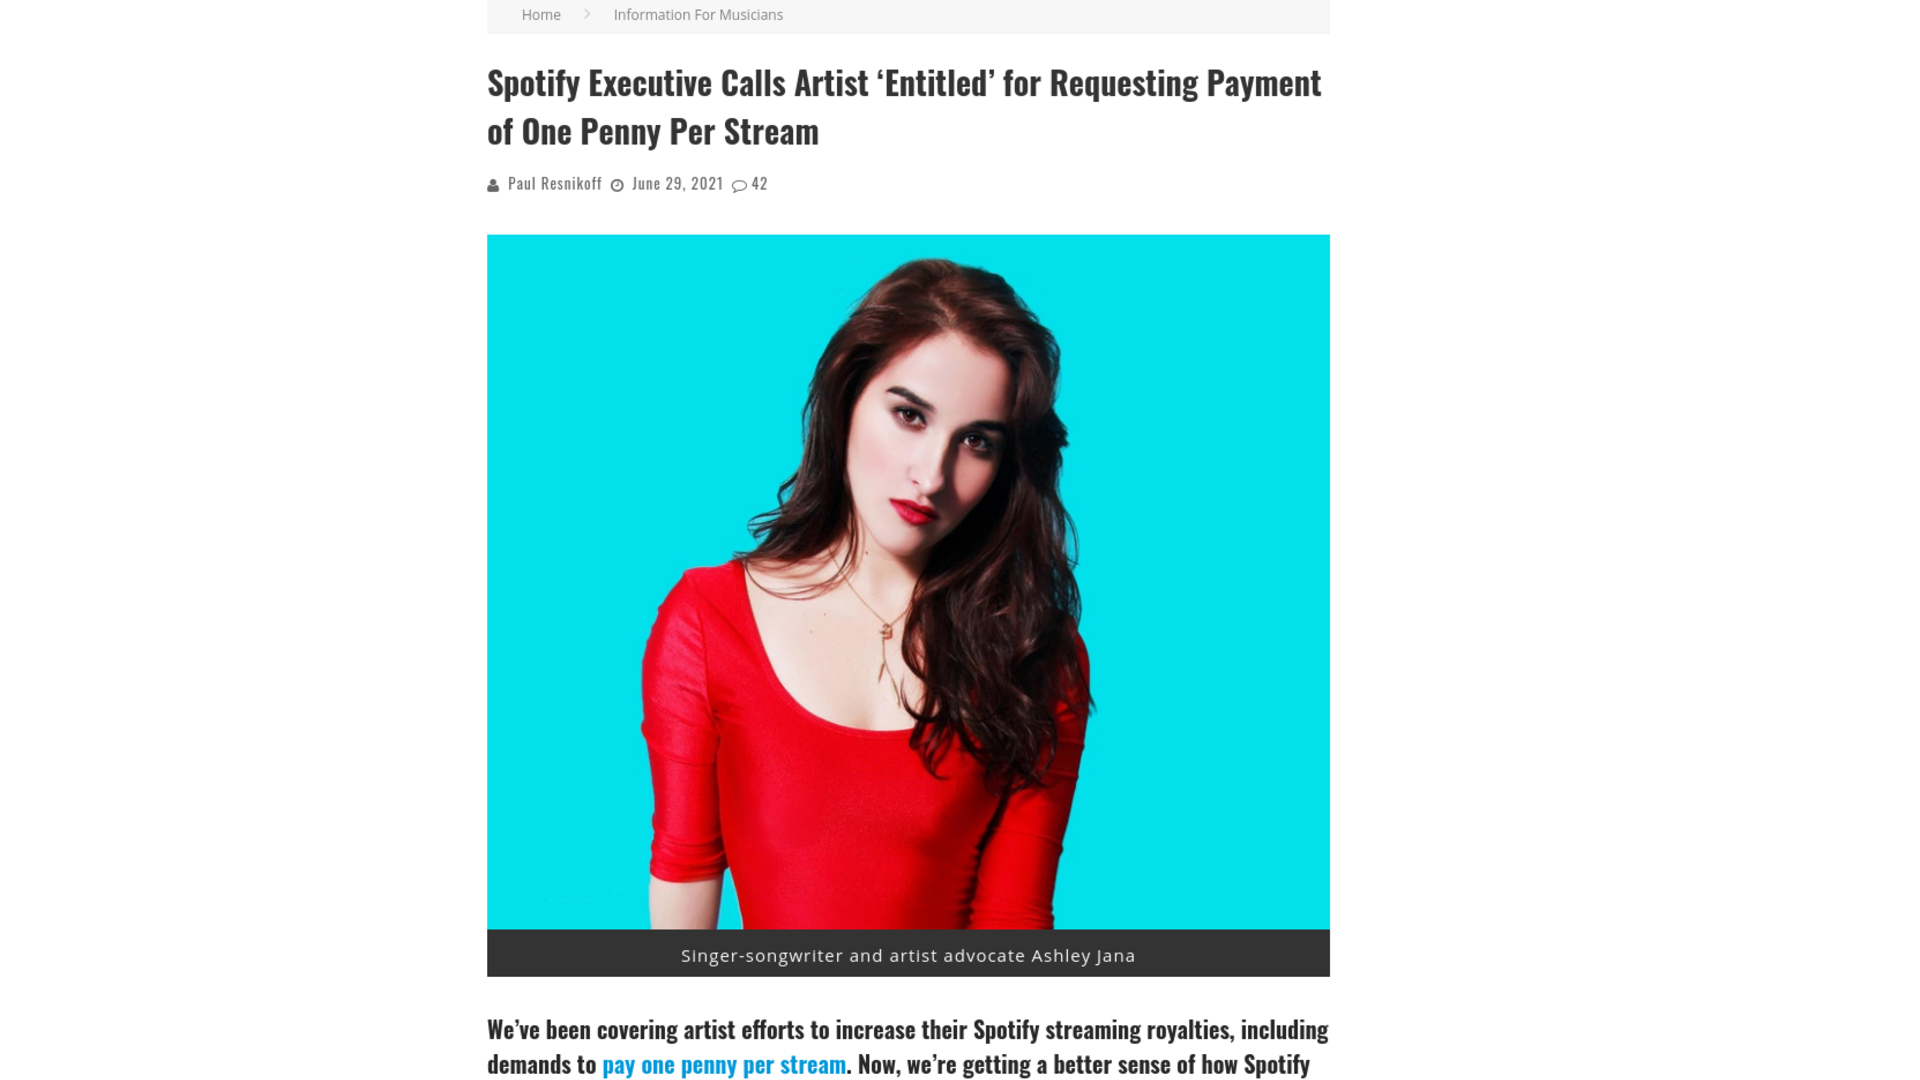 Fairness Rocks News Spotify Executive Calls Artist 'Entitled' for Requesting Payment of One Penny Per Stream